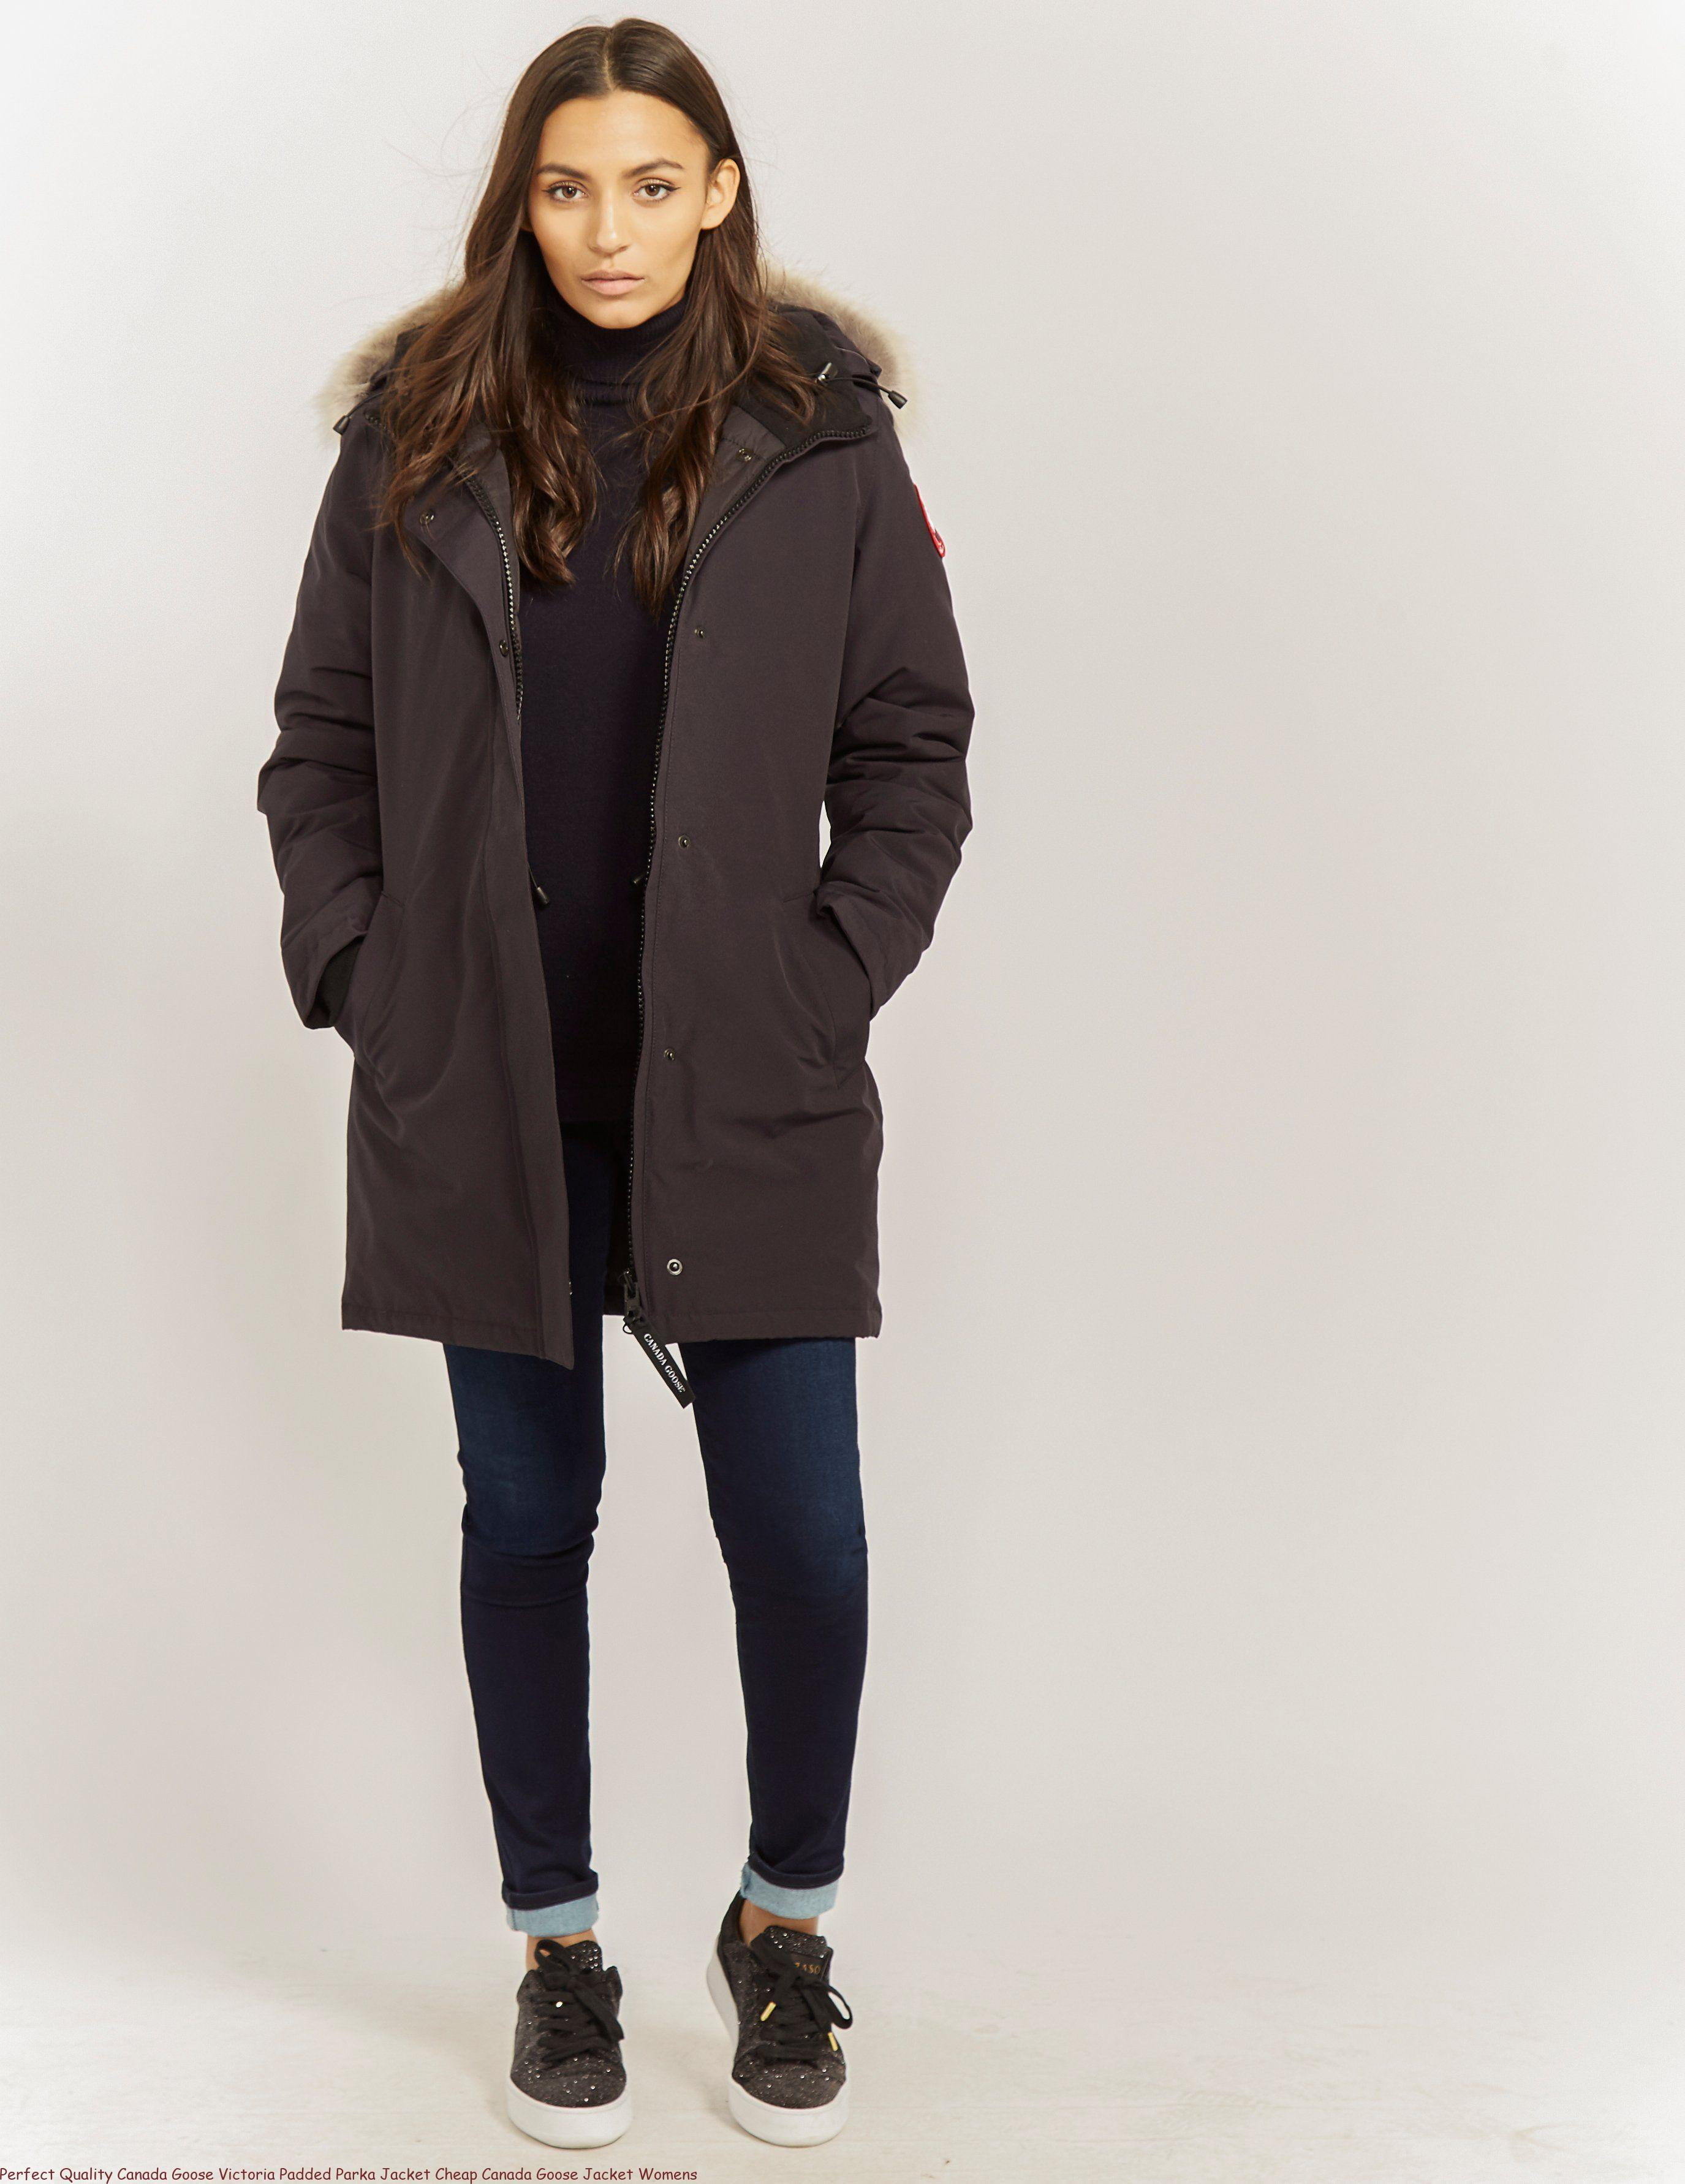 cd9e5acf214a45 Perfect Quality Canada Goose Victoria Padded Parka Jacket Cheap Canada  Goose Jacket Womens – Canada Goose Outlet Toronto Factory Jacket Sale